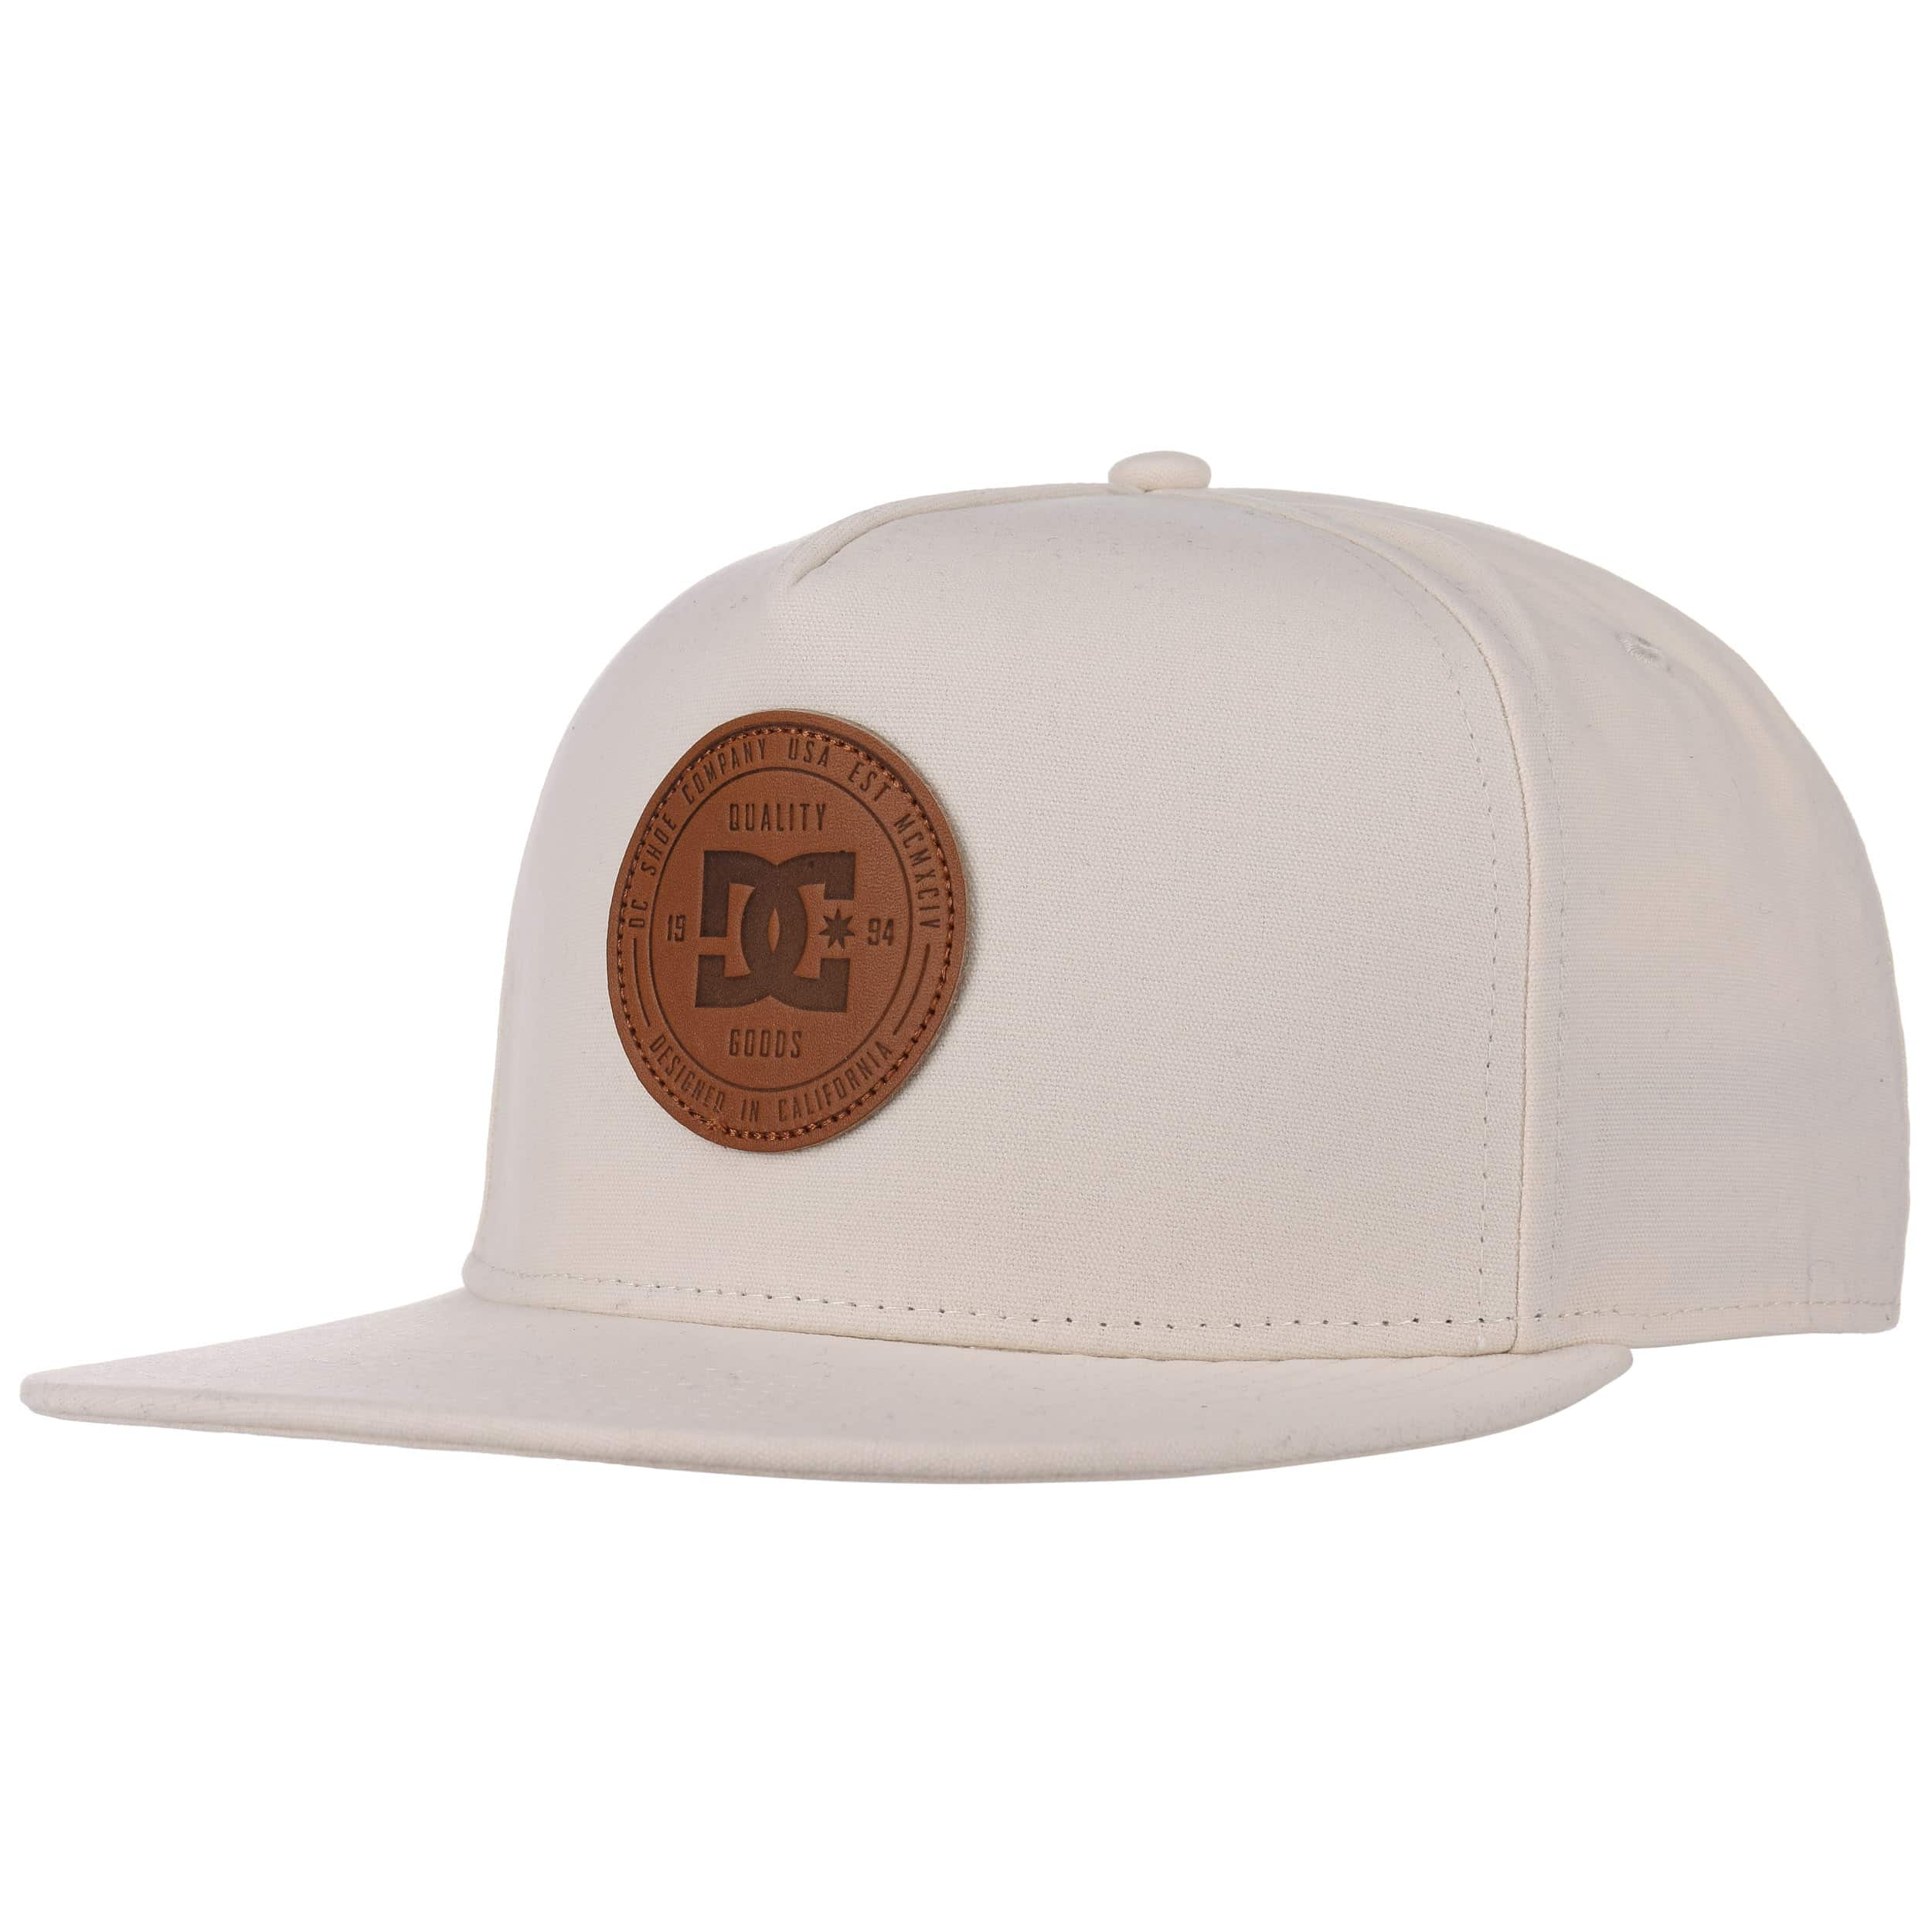 newest 80073 7c762 ... Proceeder Snapback Cap by DC Shoes Co - cream white 5